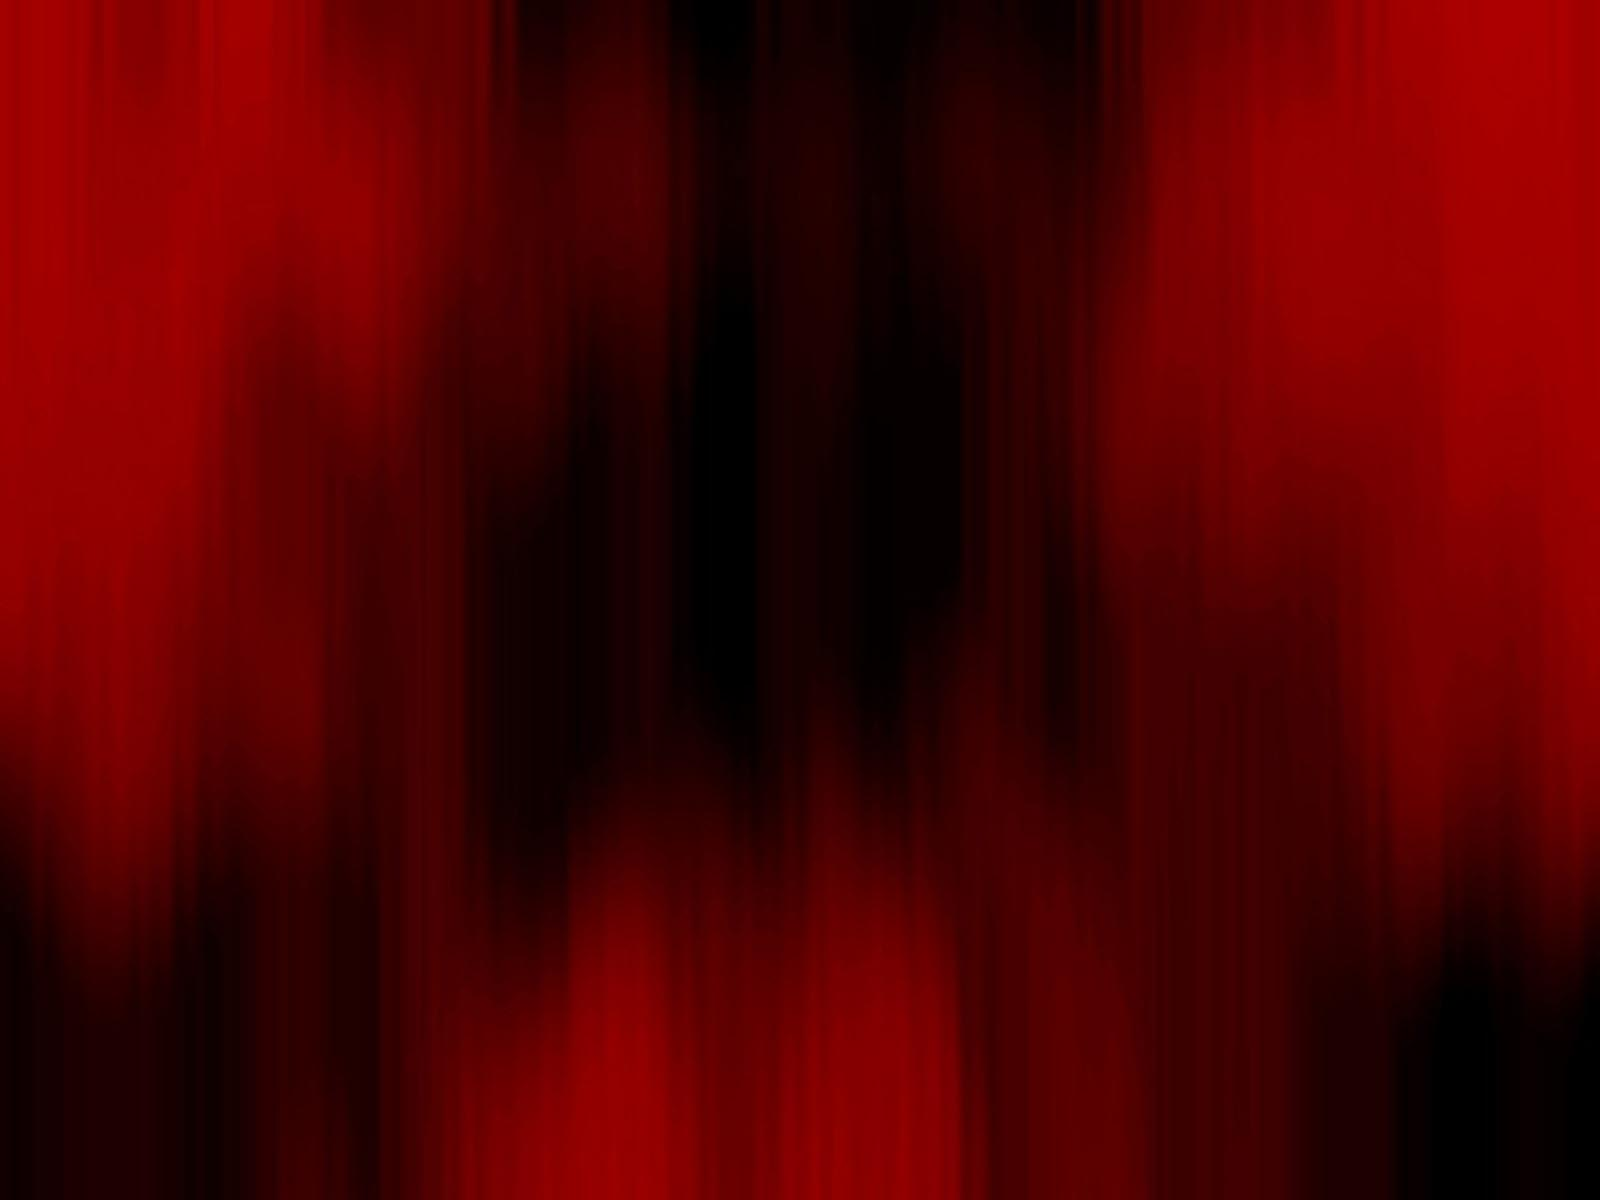 Red and Black BackgroundHD Wallpapers 1600x1200